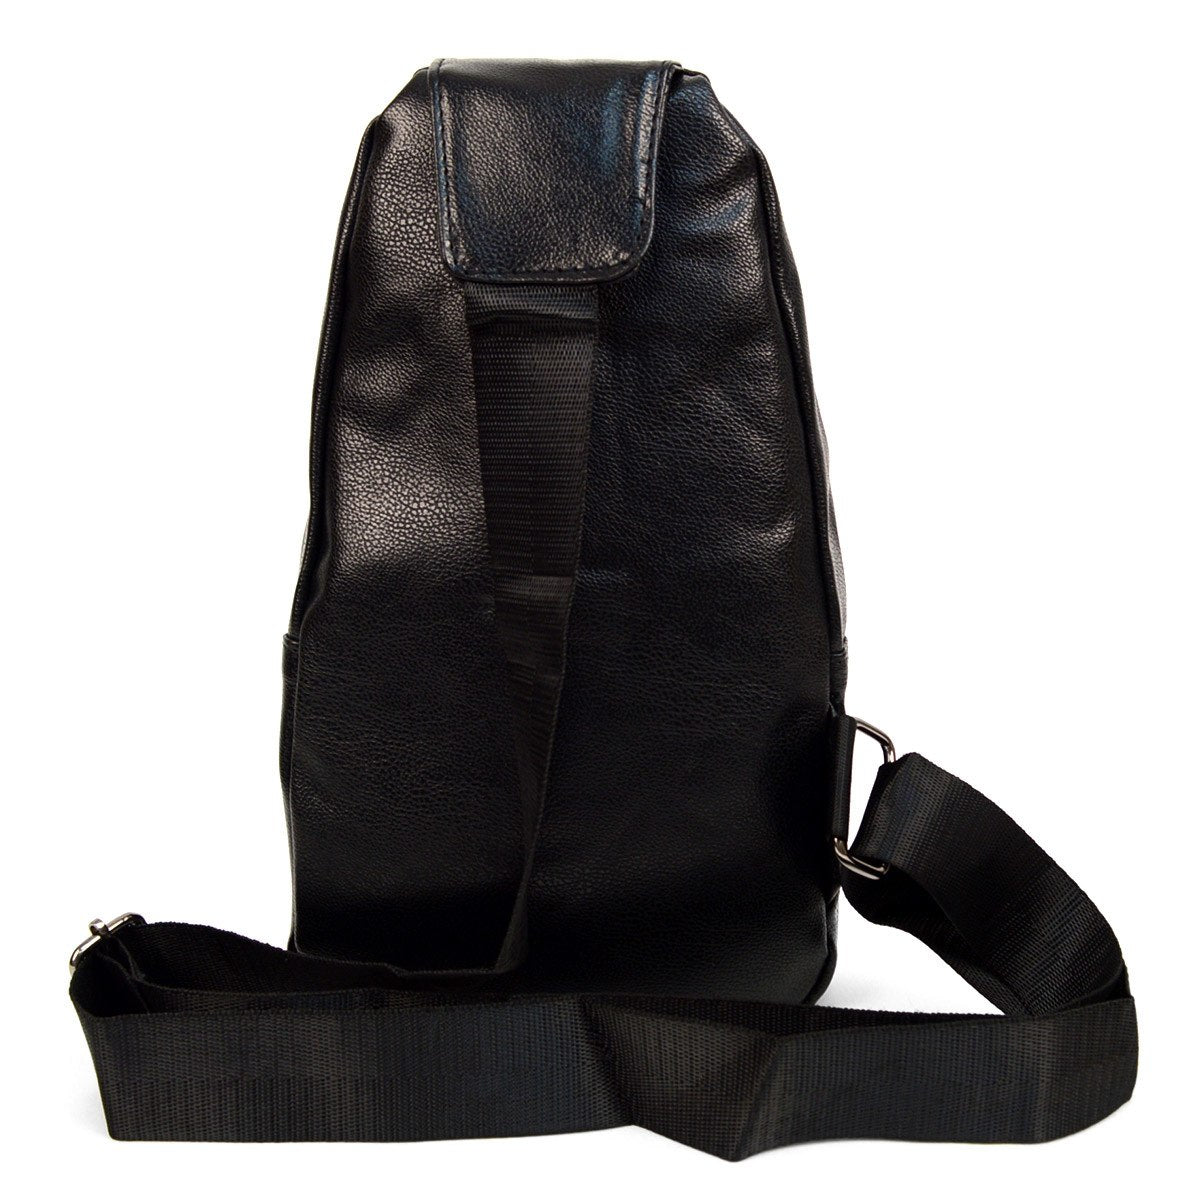 Westend Crossbody Leather Sling Bag Backpack with Adjustable Strap